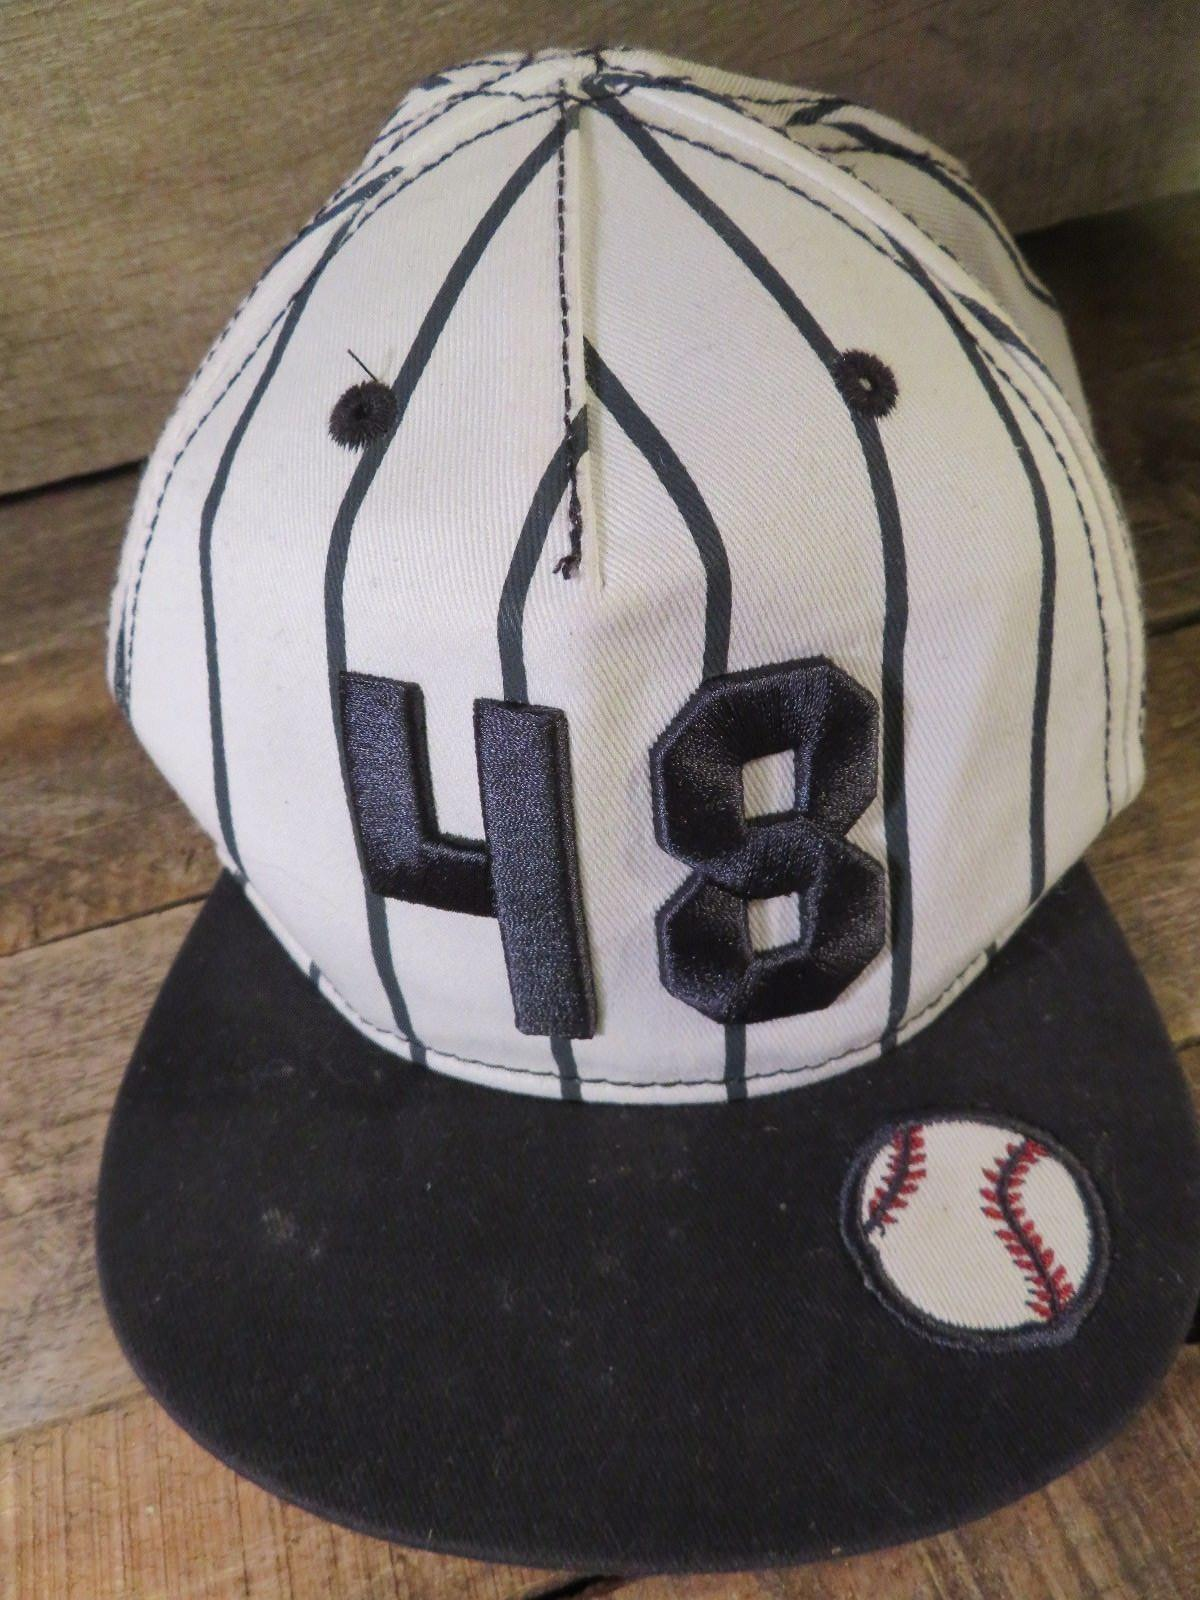 Baseball Pinstripe #48 Toddler Hat Cap 12 - 18 M